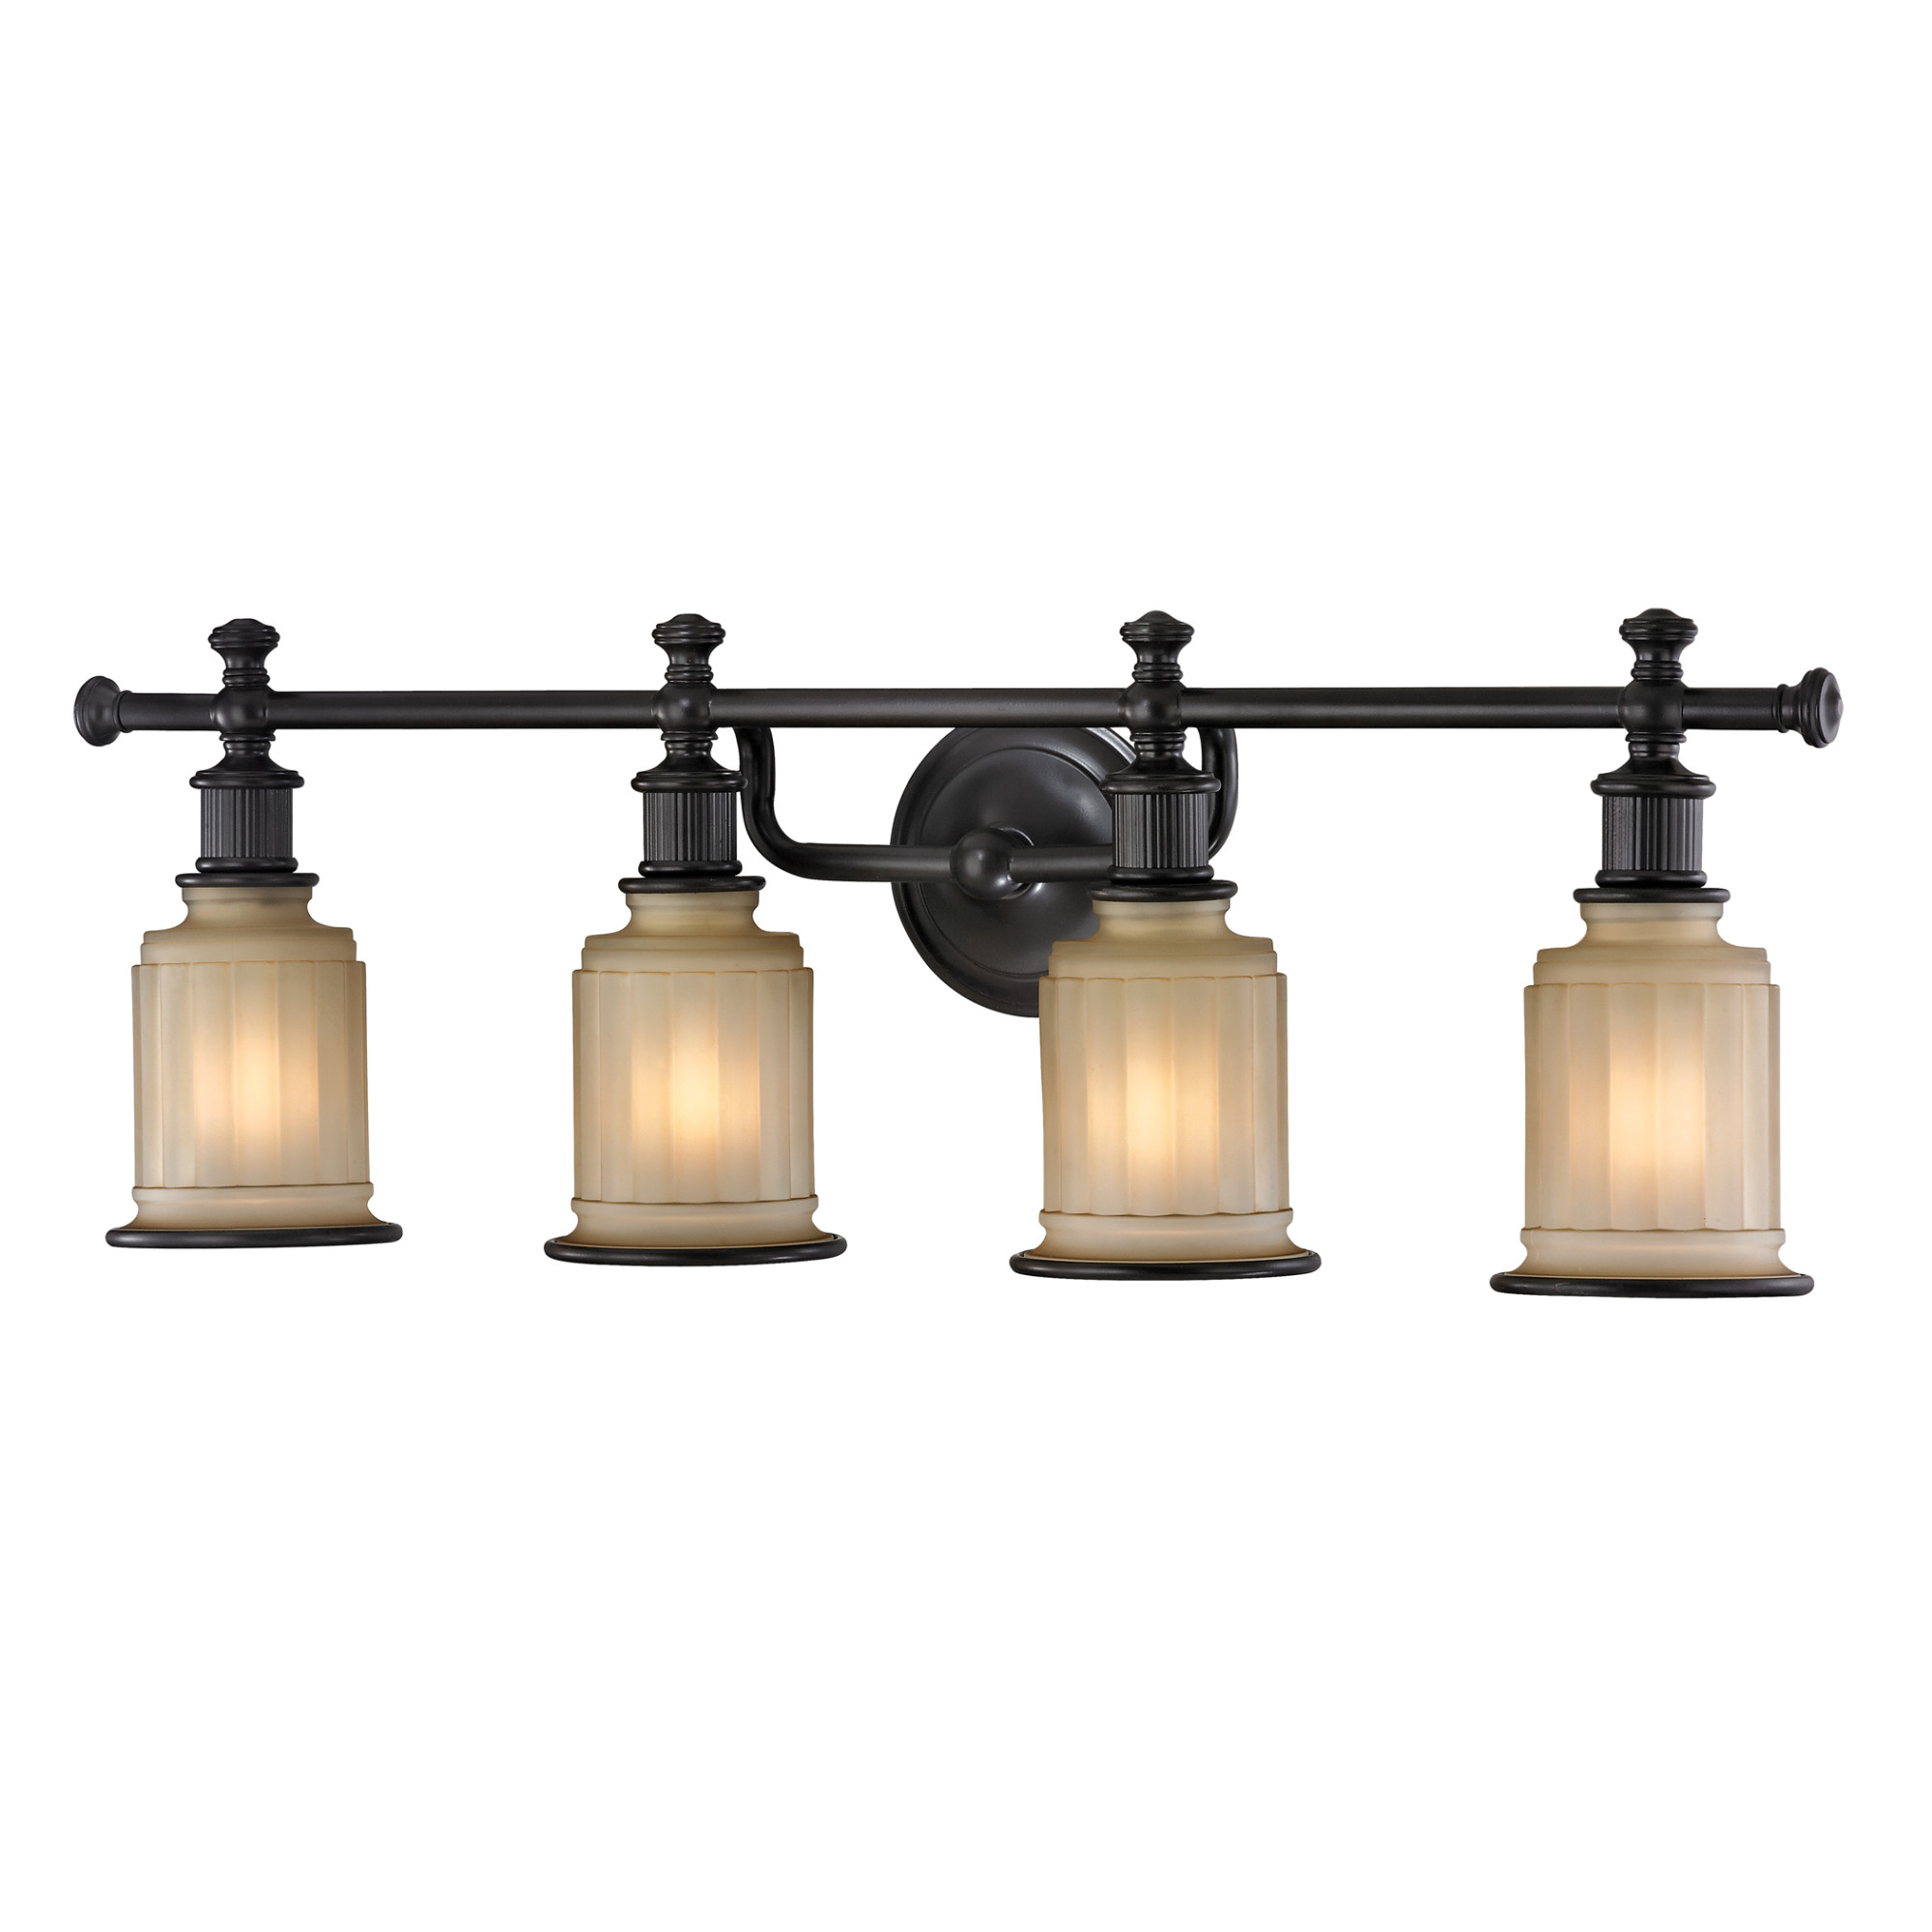 Details about elk lighting 52013 4 acadia 4 light 30 vanity fixture with frosted glass shade